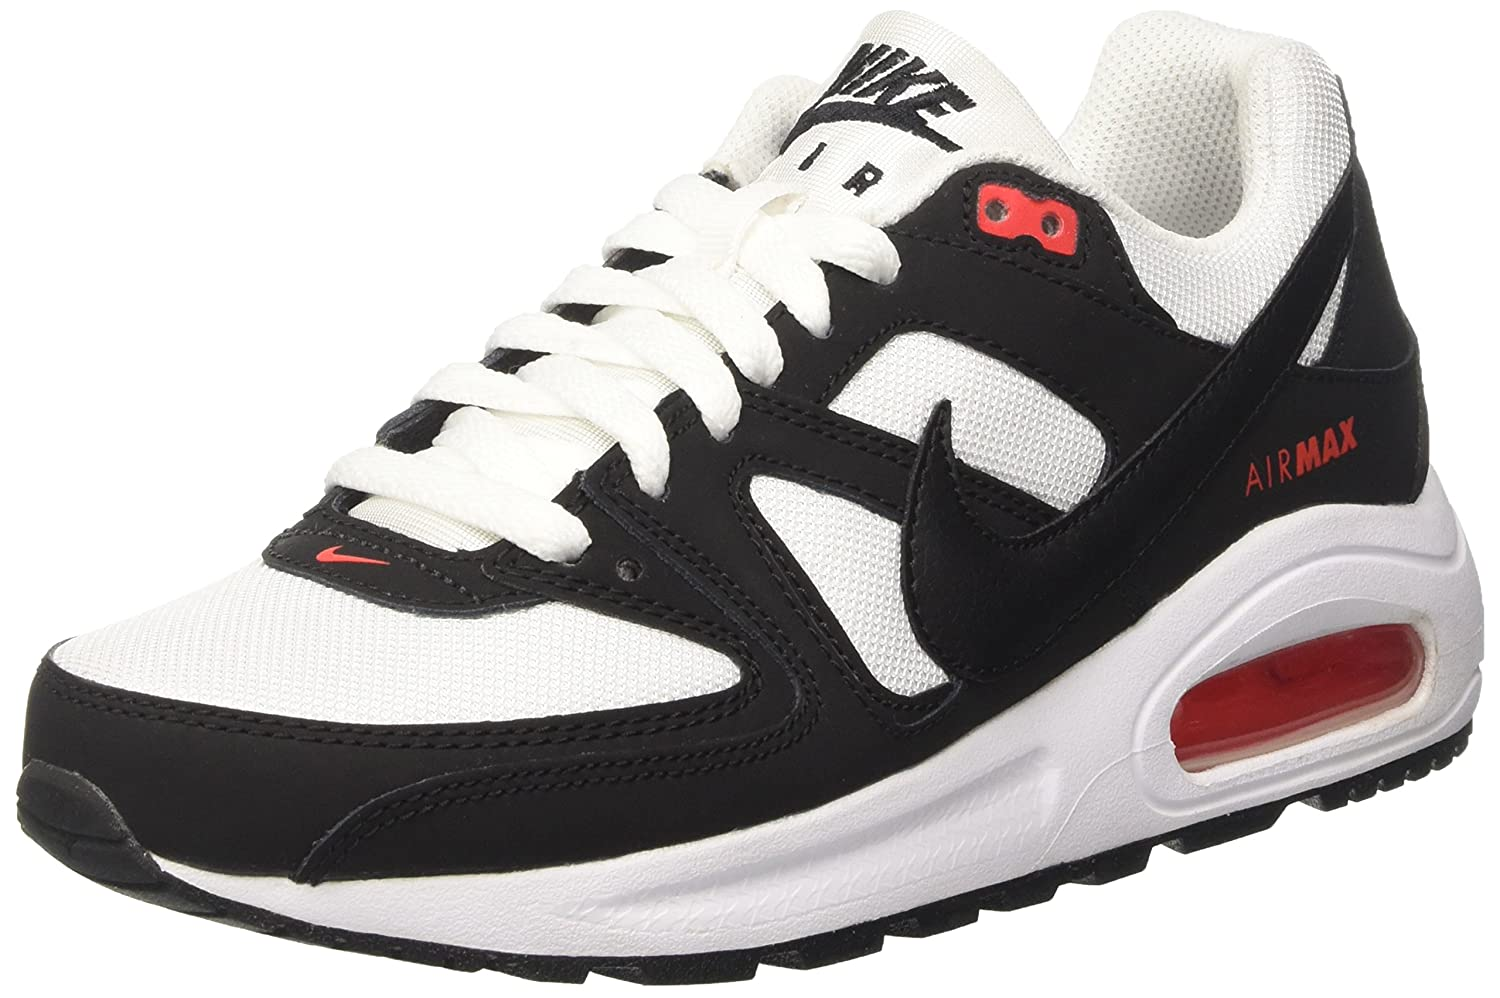 quality design 5d56f e11e4 Amazon.com   Nike Air Max Command Flex (GS) White Black Kids Youth Shoes  Size 6.5Y   Running